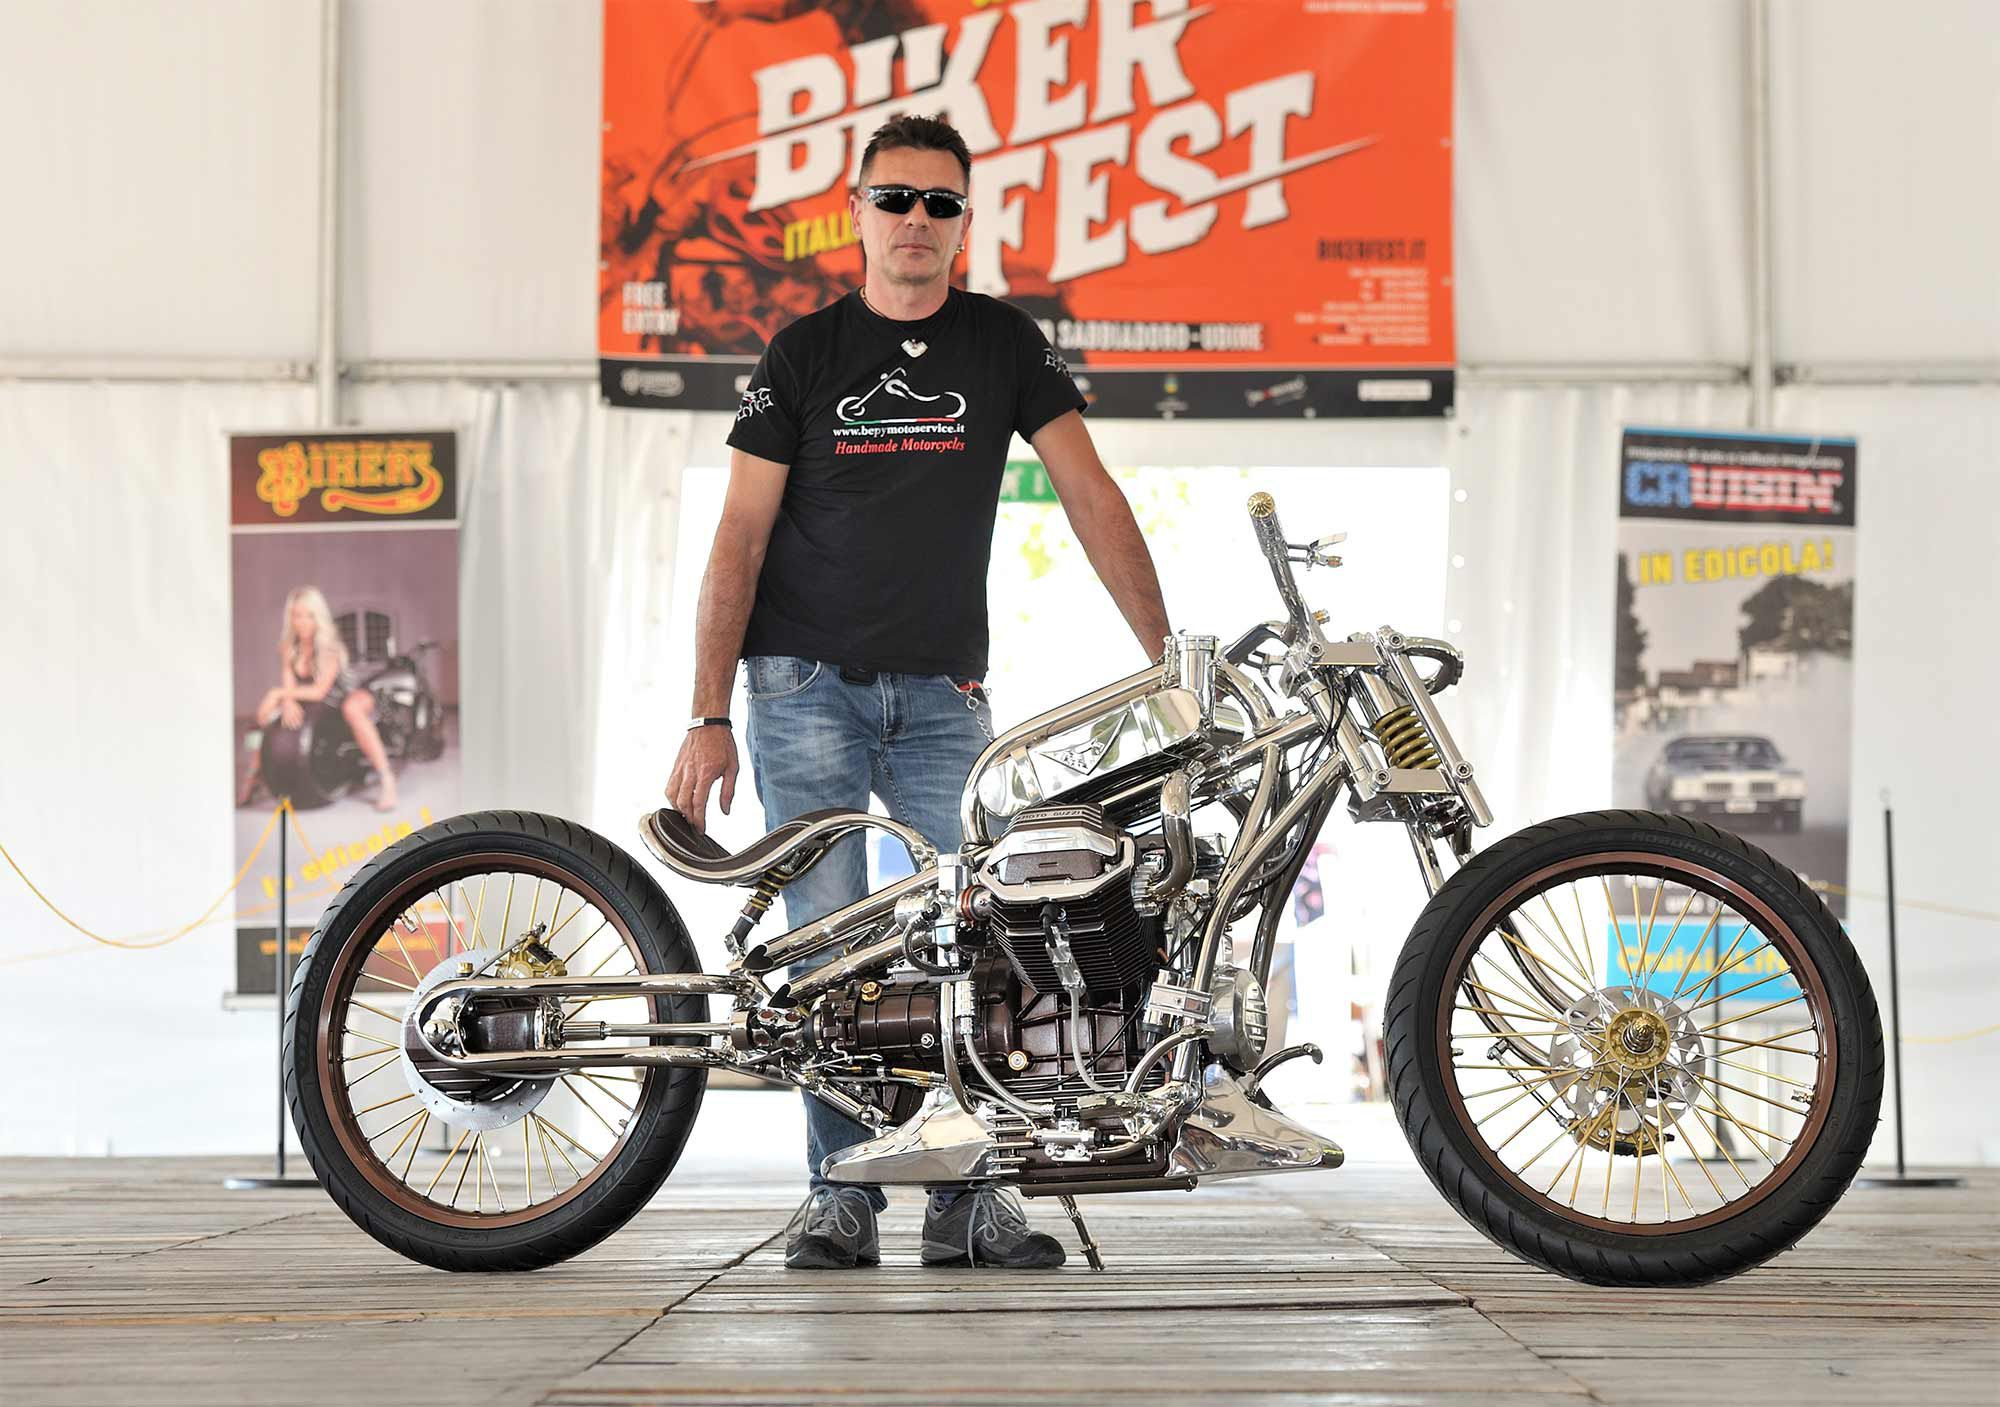 This Moto Guzzi 850-T5 by Bepy Moto Service won its class for the AMD show at Biker Fest 2020.